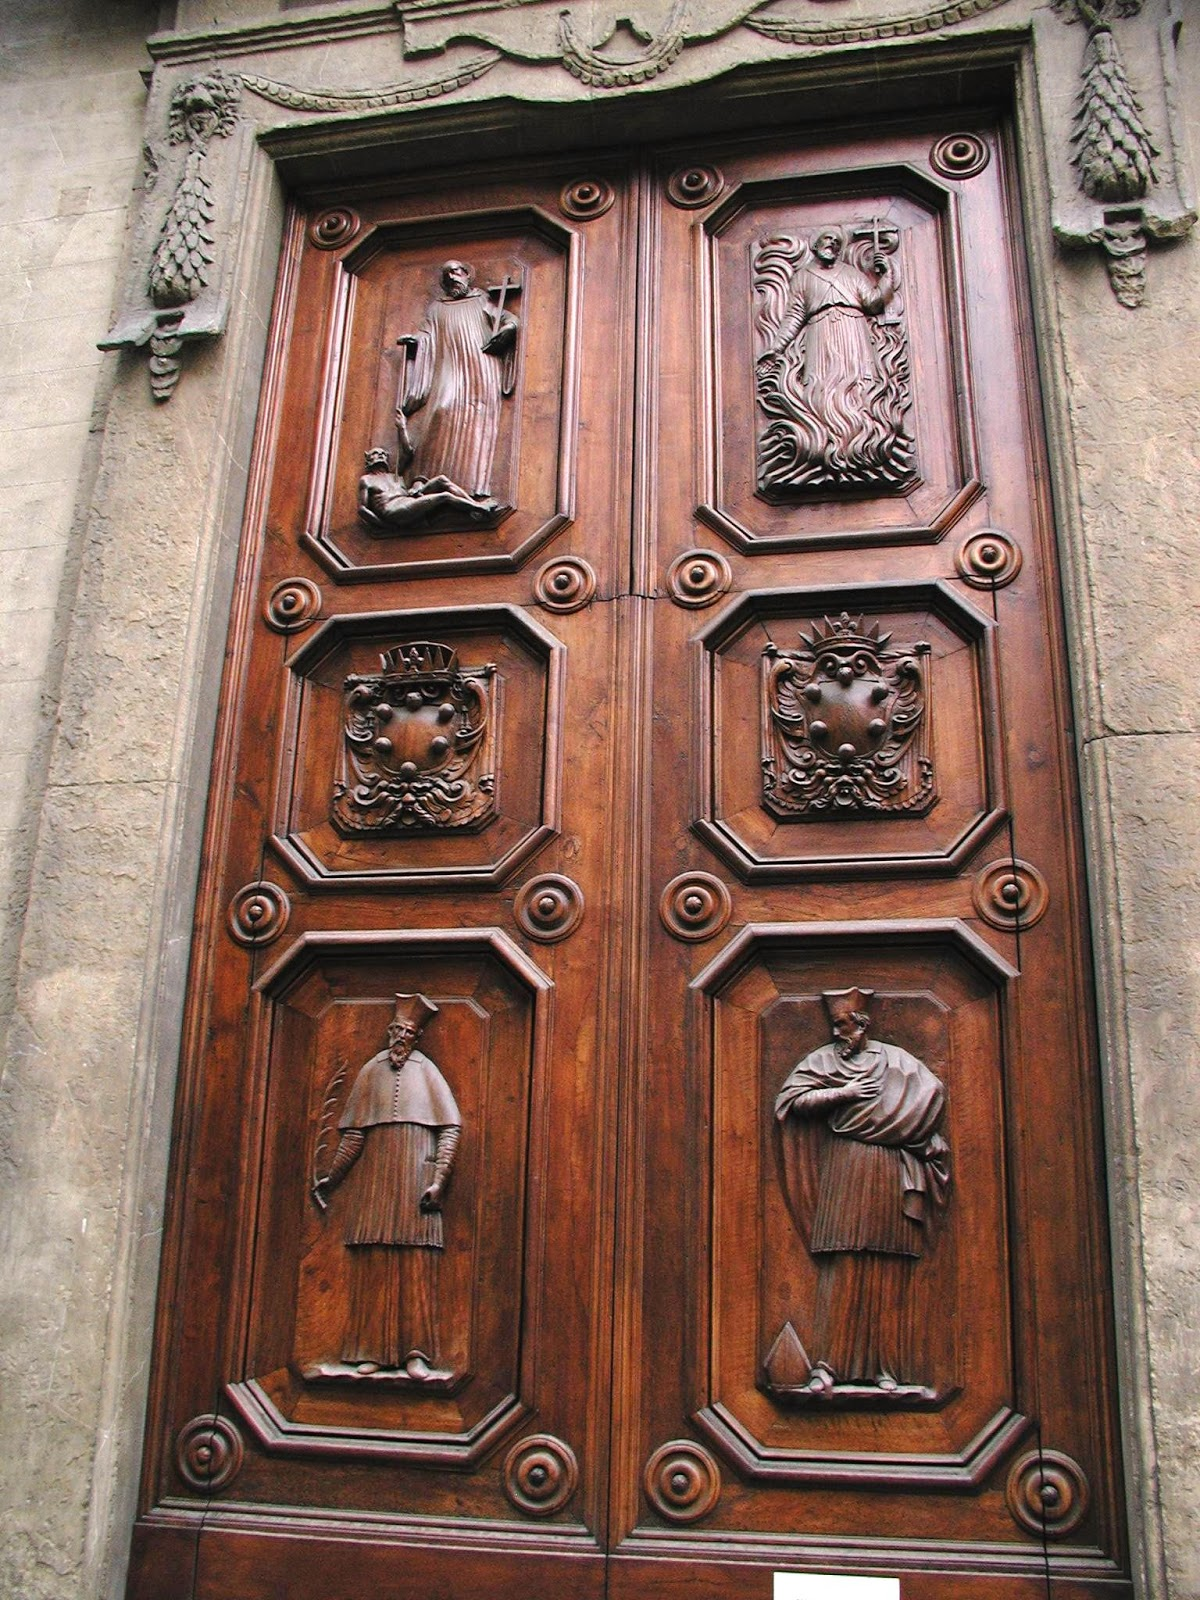 The Old Saw Carved Wooden Doors Of Europe